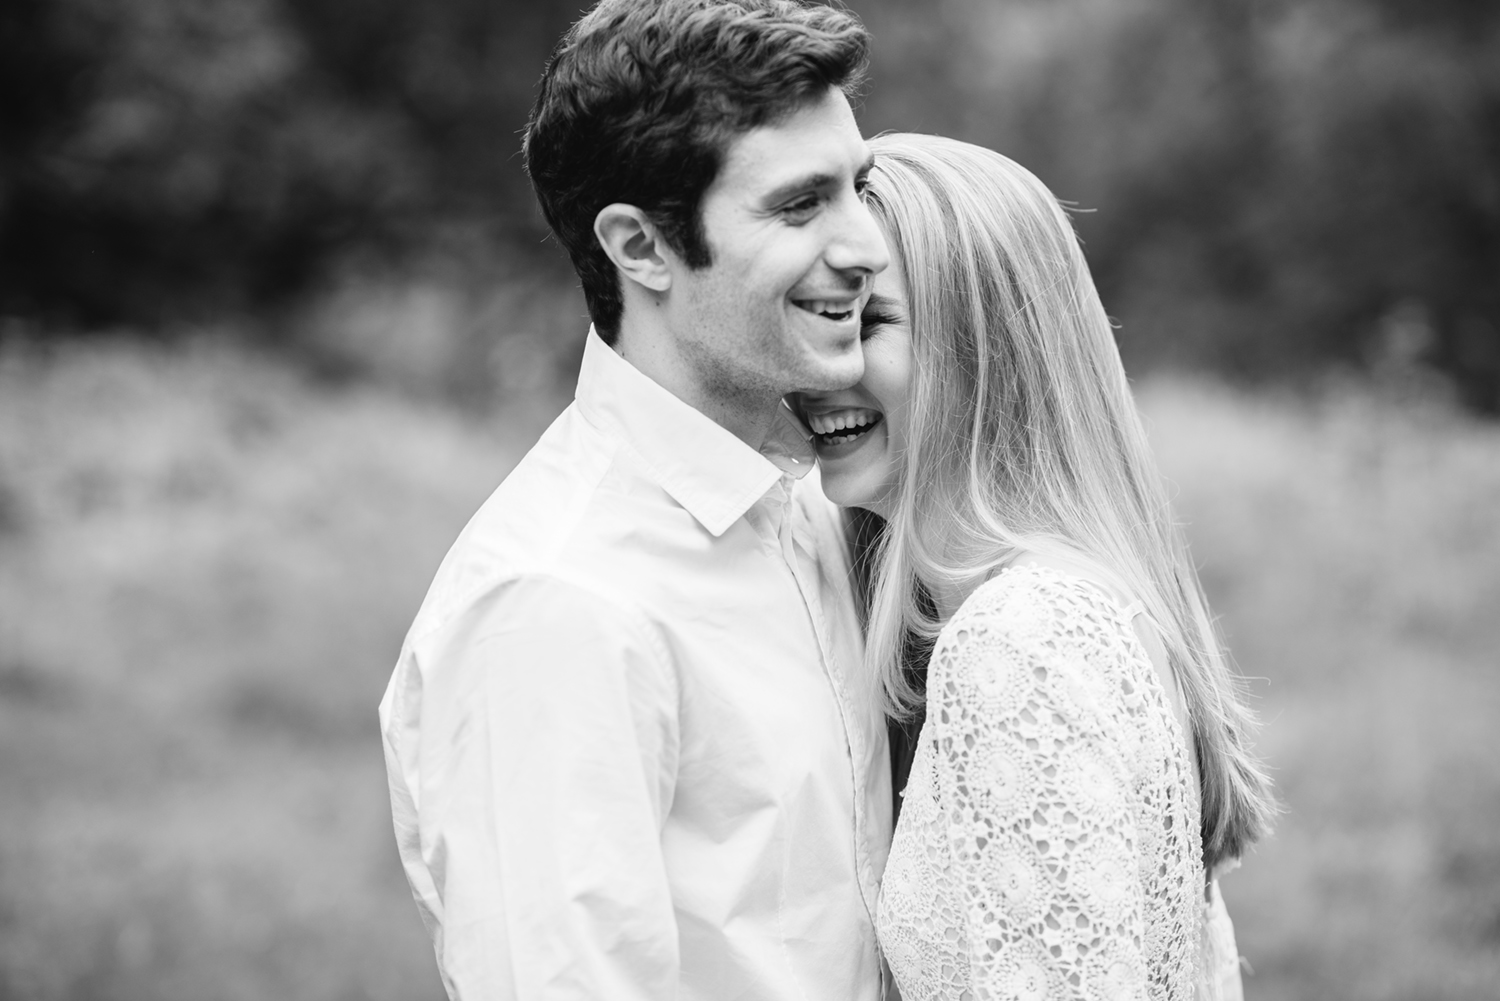 Hampstead-Heath-Engagement-Shoot-011.jpg